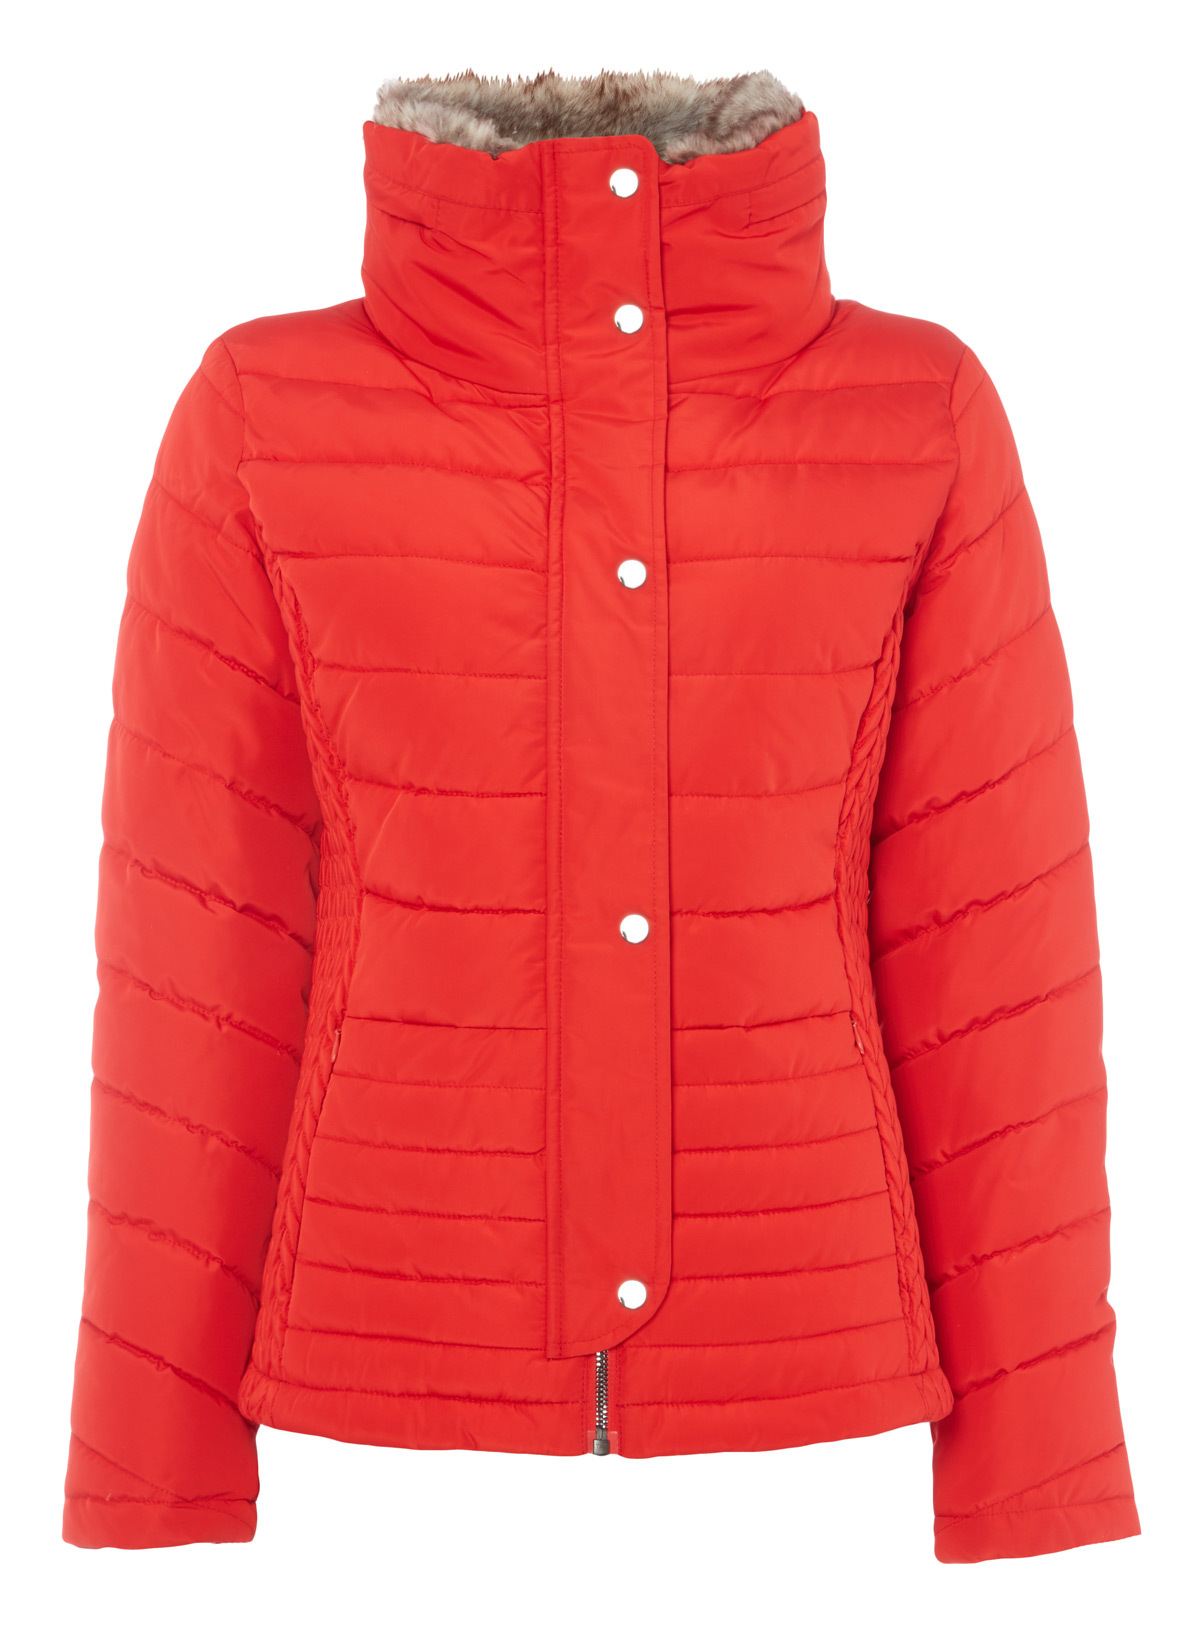 Womens Red Quilted Padded Jacket | Tu clothing